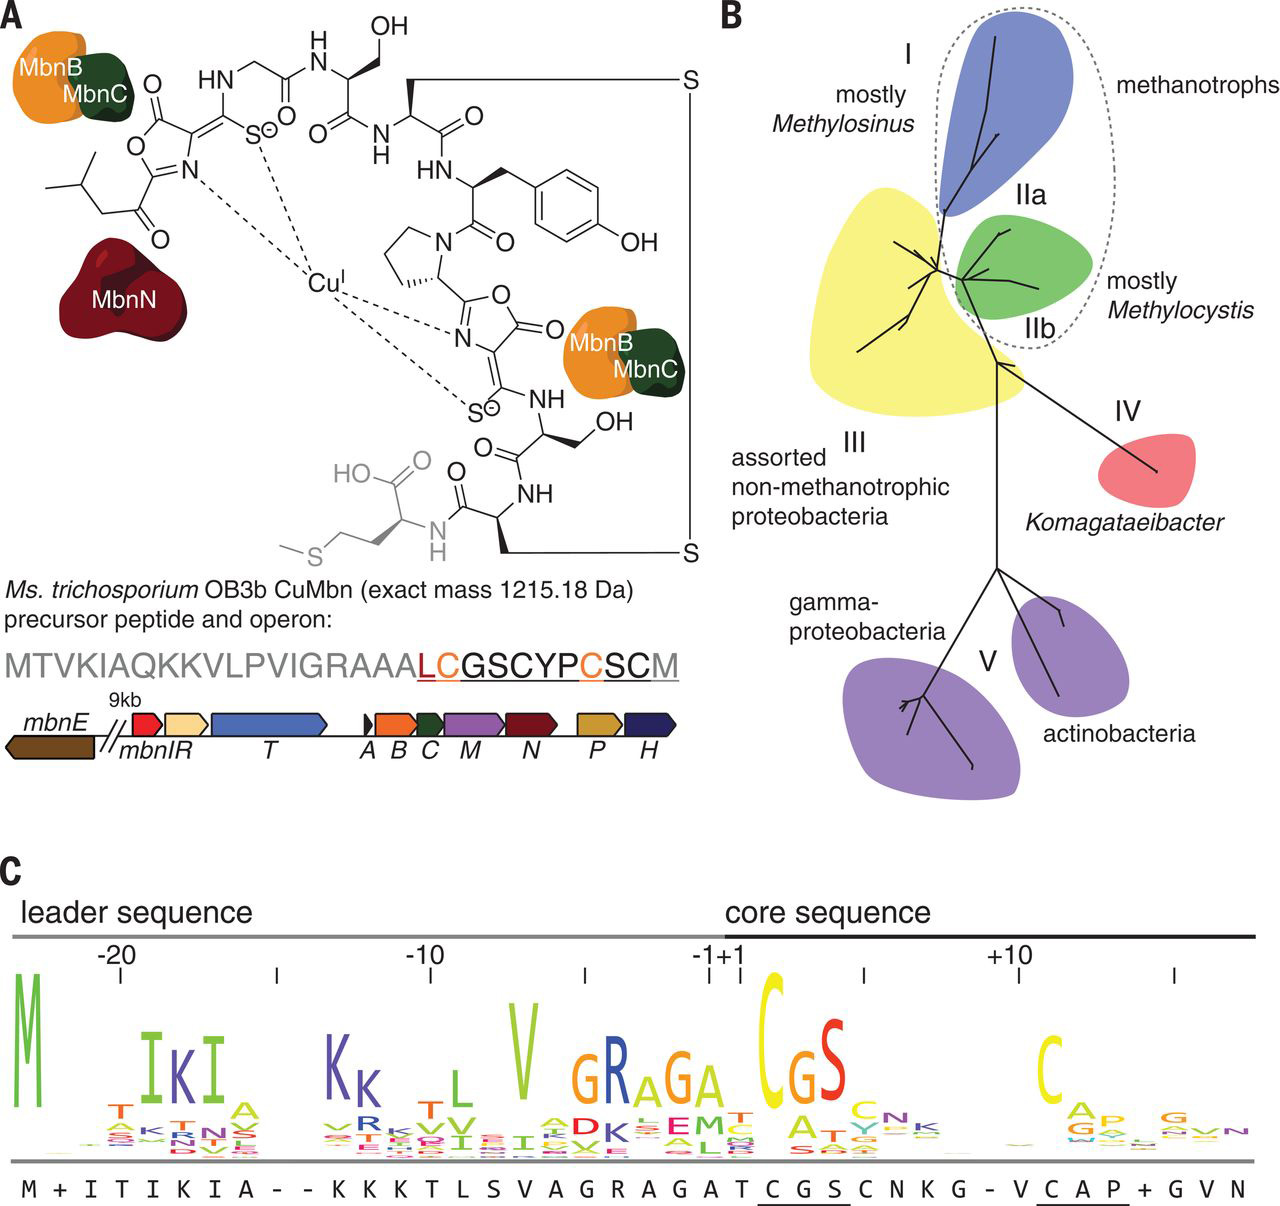 Mbn structure, operon organization, phylogeny, and precursor peptide sequence